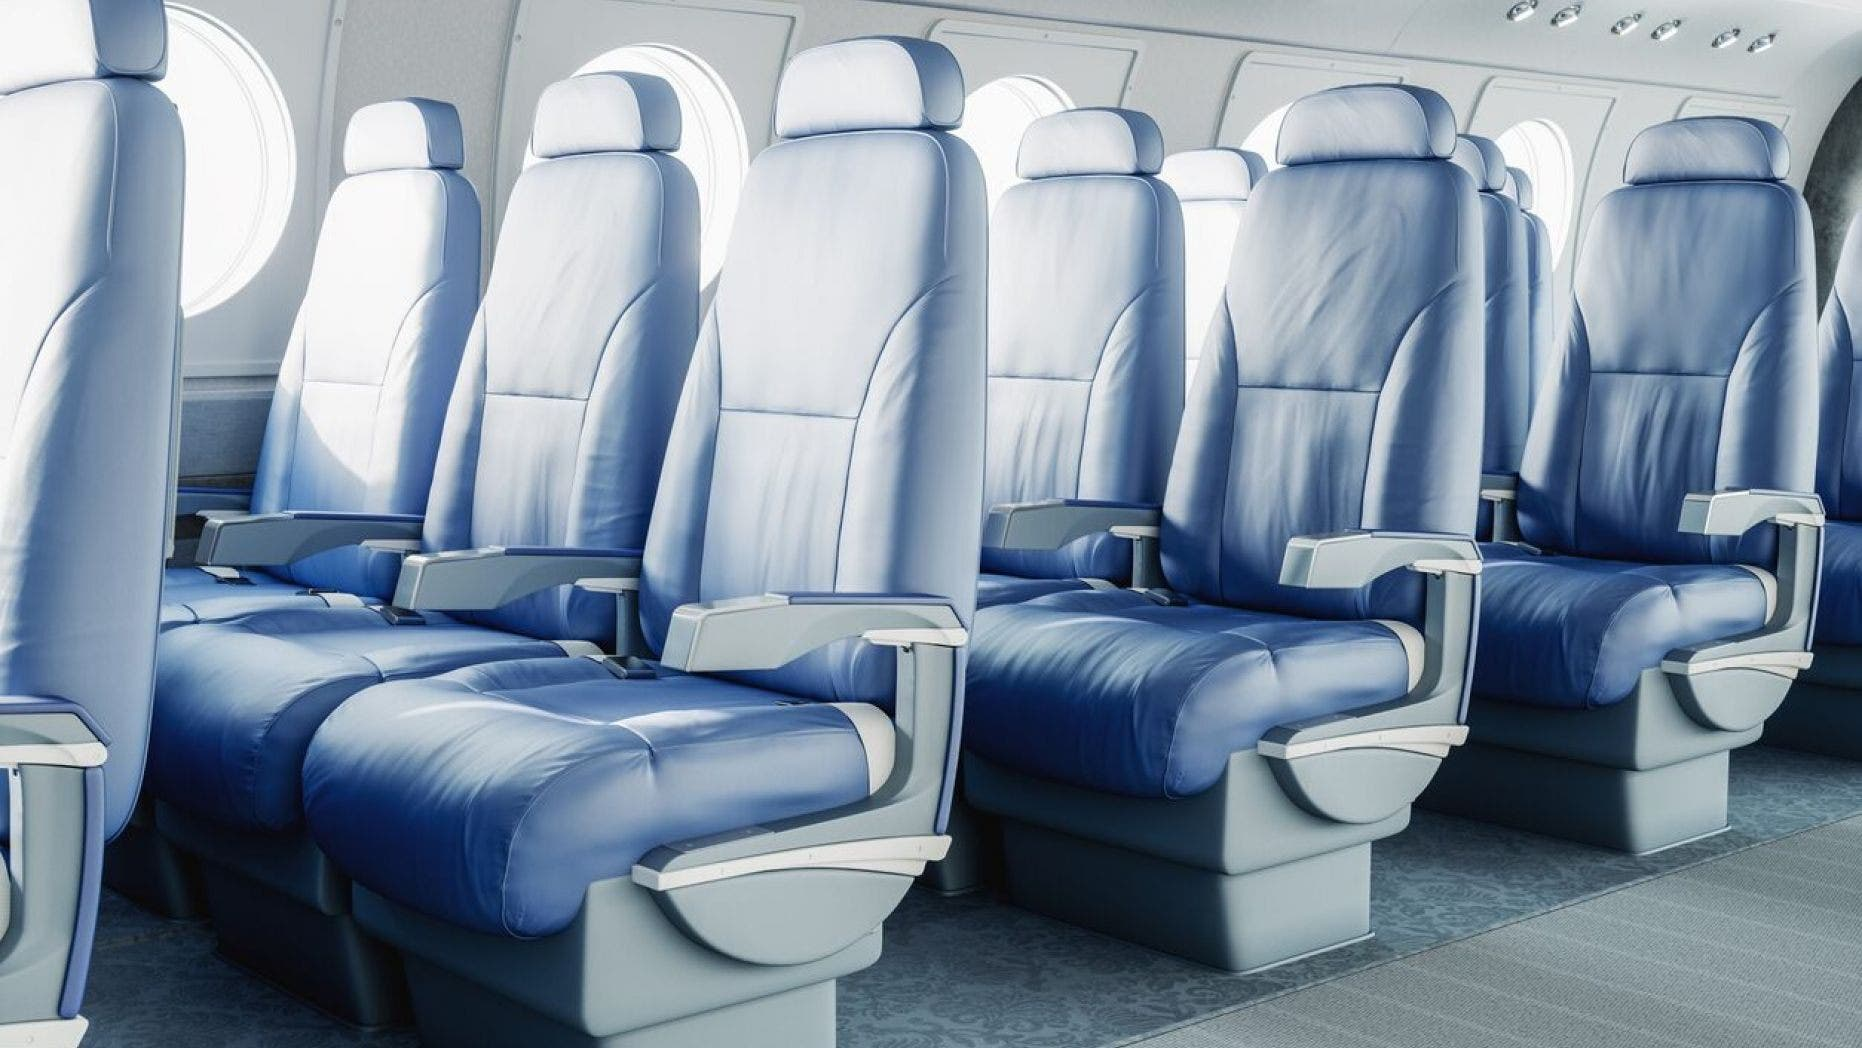 Amid coronavirus, flu outbreaks, here's how to disinfect plane seats